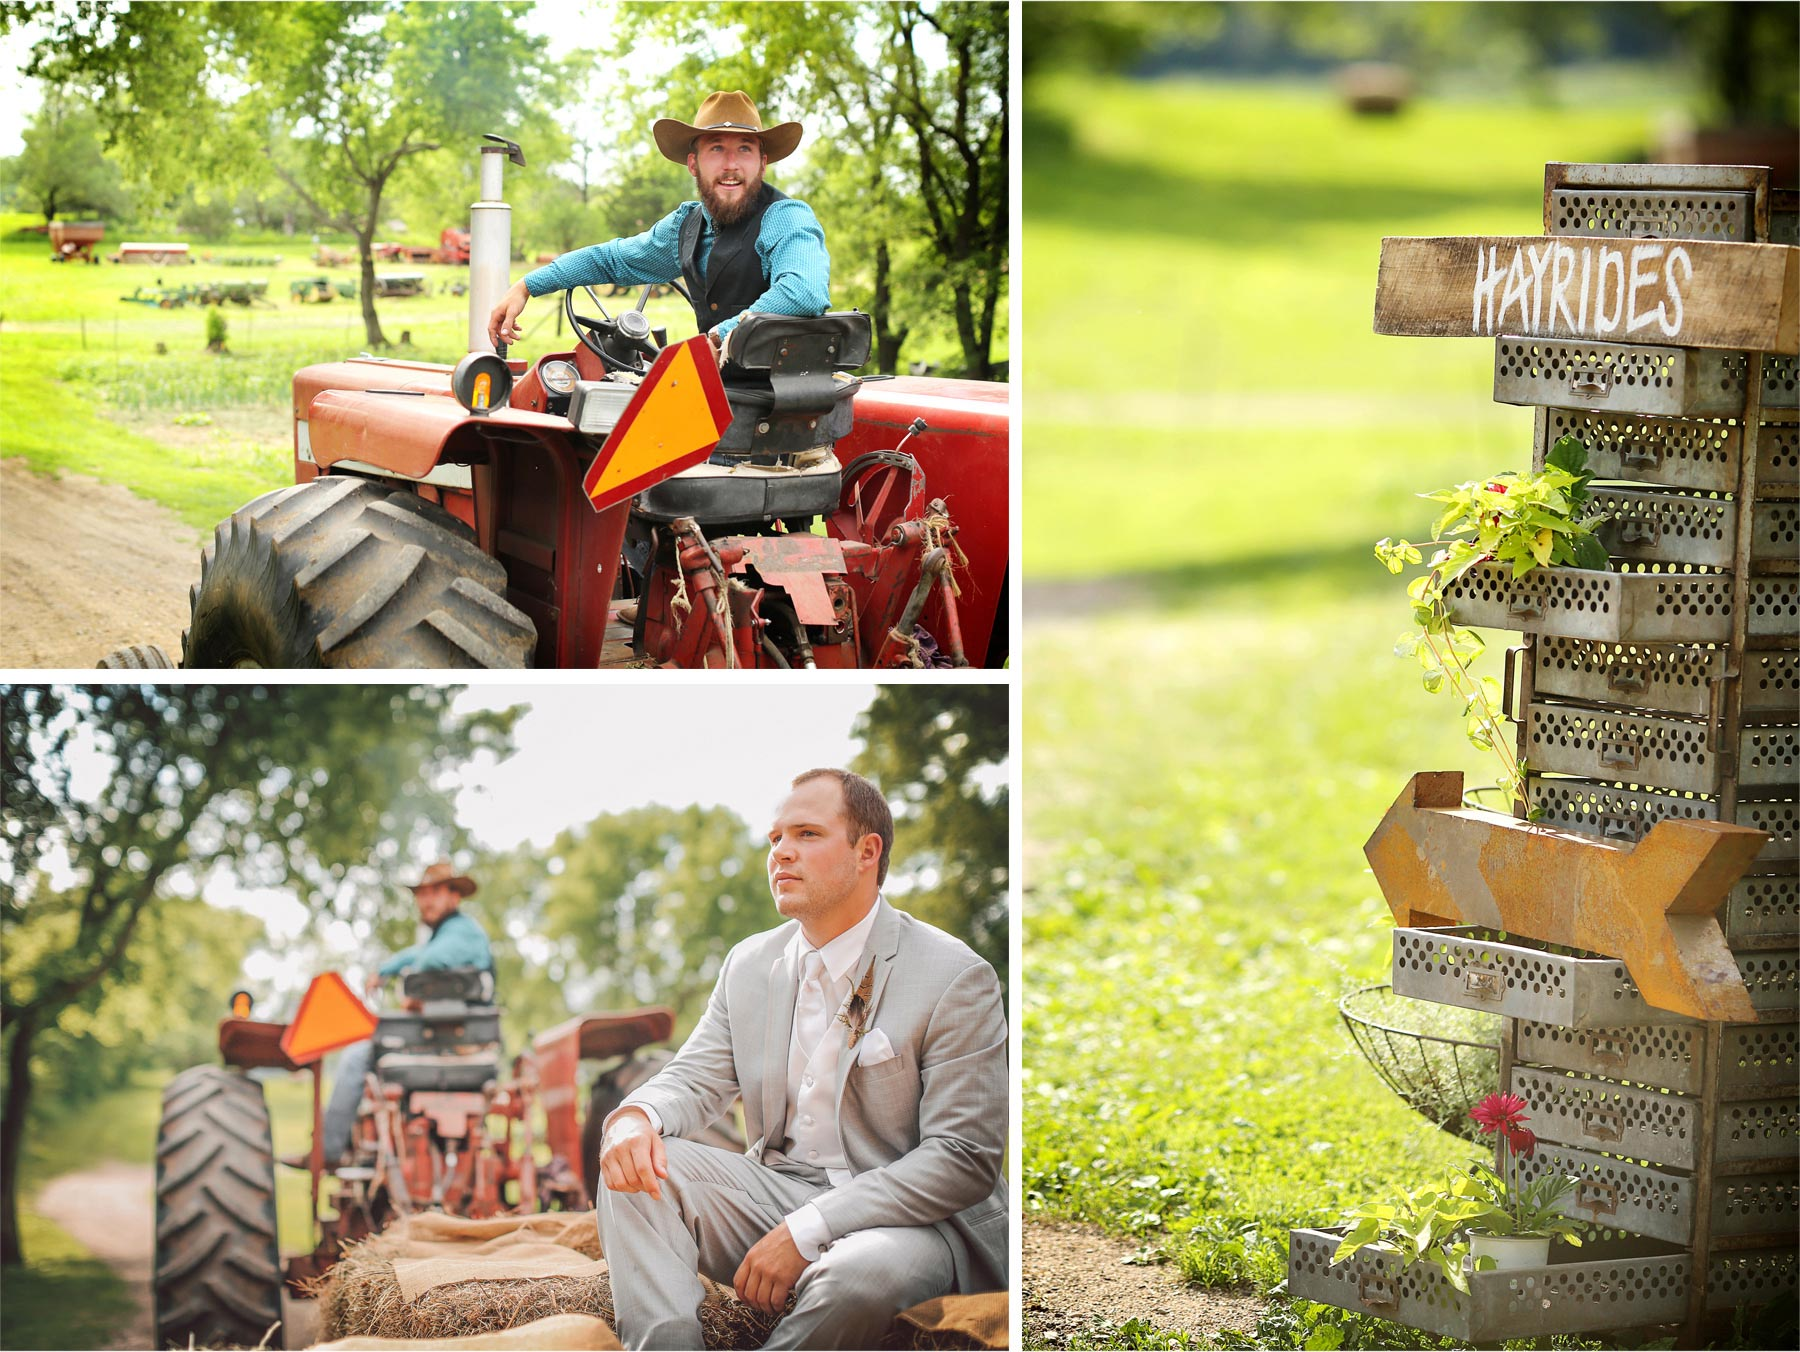 11-South-Haven-Minnesota-Wedding-Photographer-by-Andrew-Vick-Photography-Summer-Tomala-Farm-Sign-Field-Tractor-Groom-Farmer-Vintage-Sign-Details-Decorations-Renee-and-Bobb.jpg